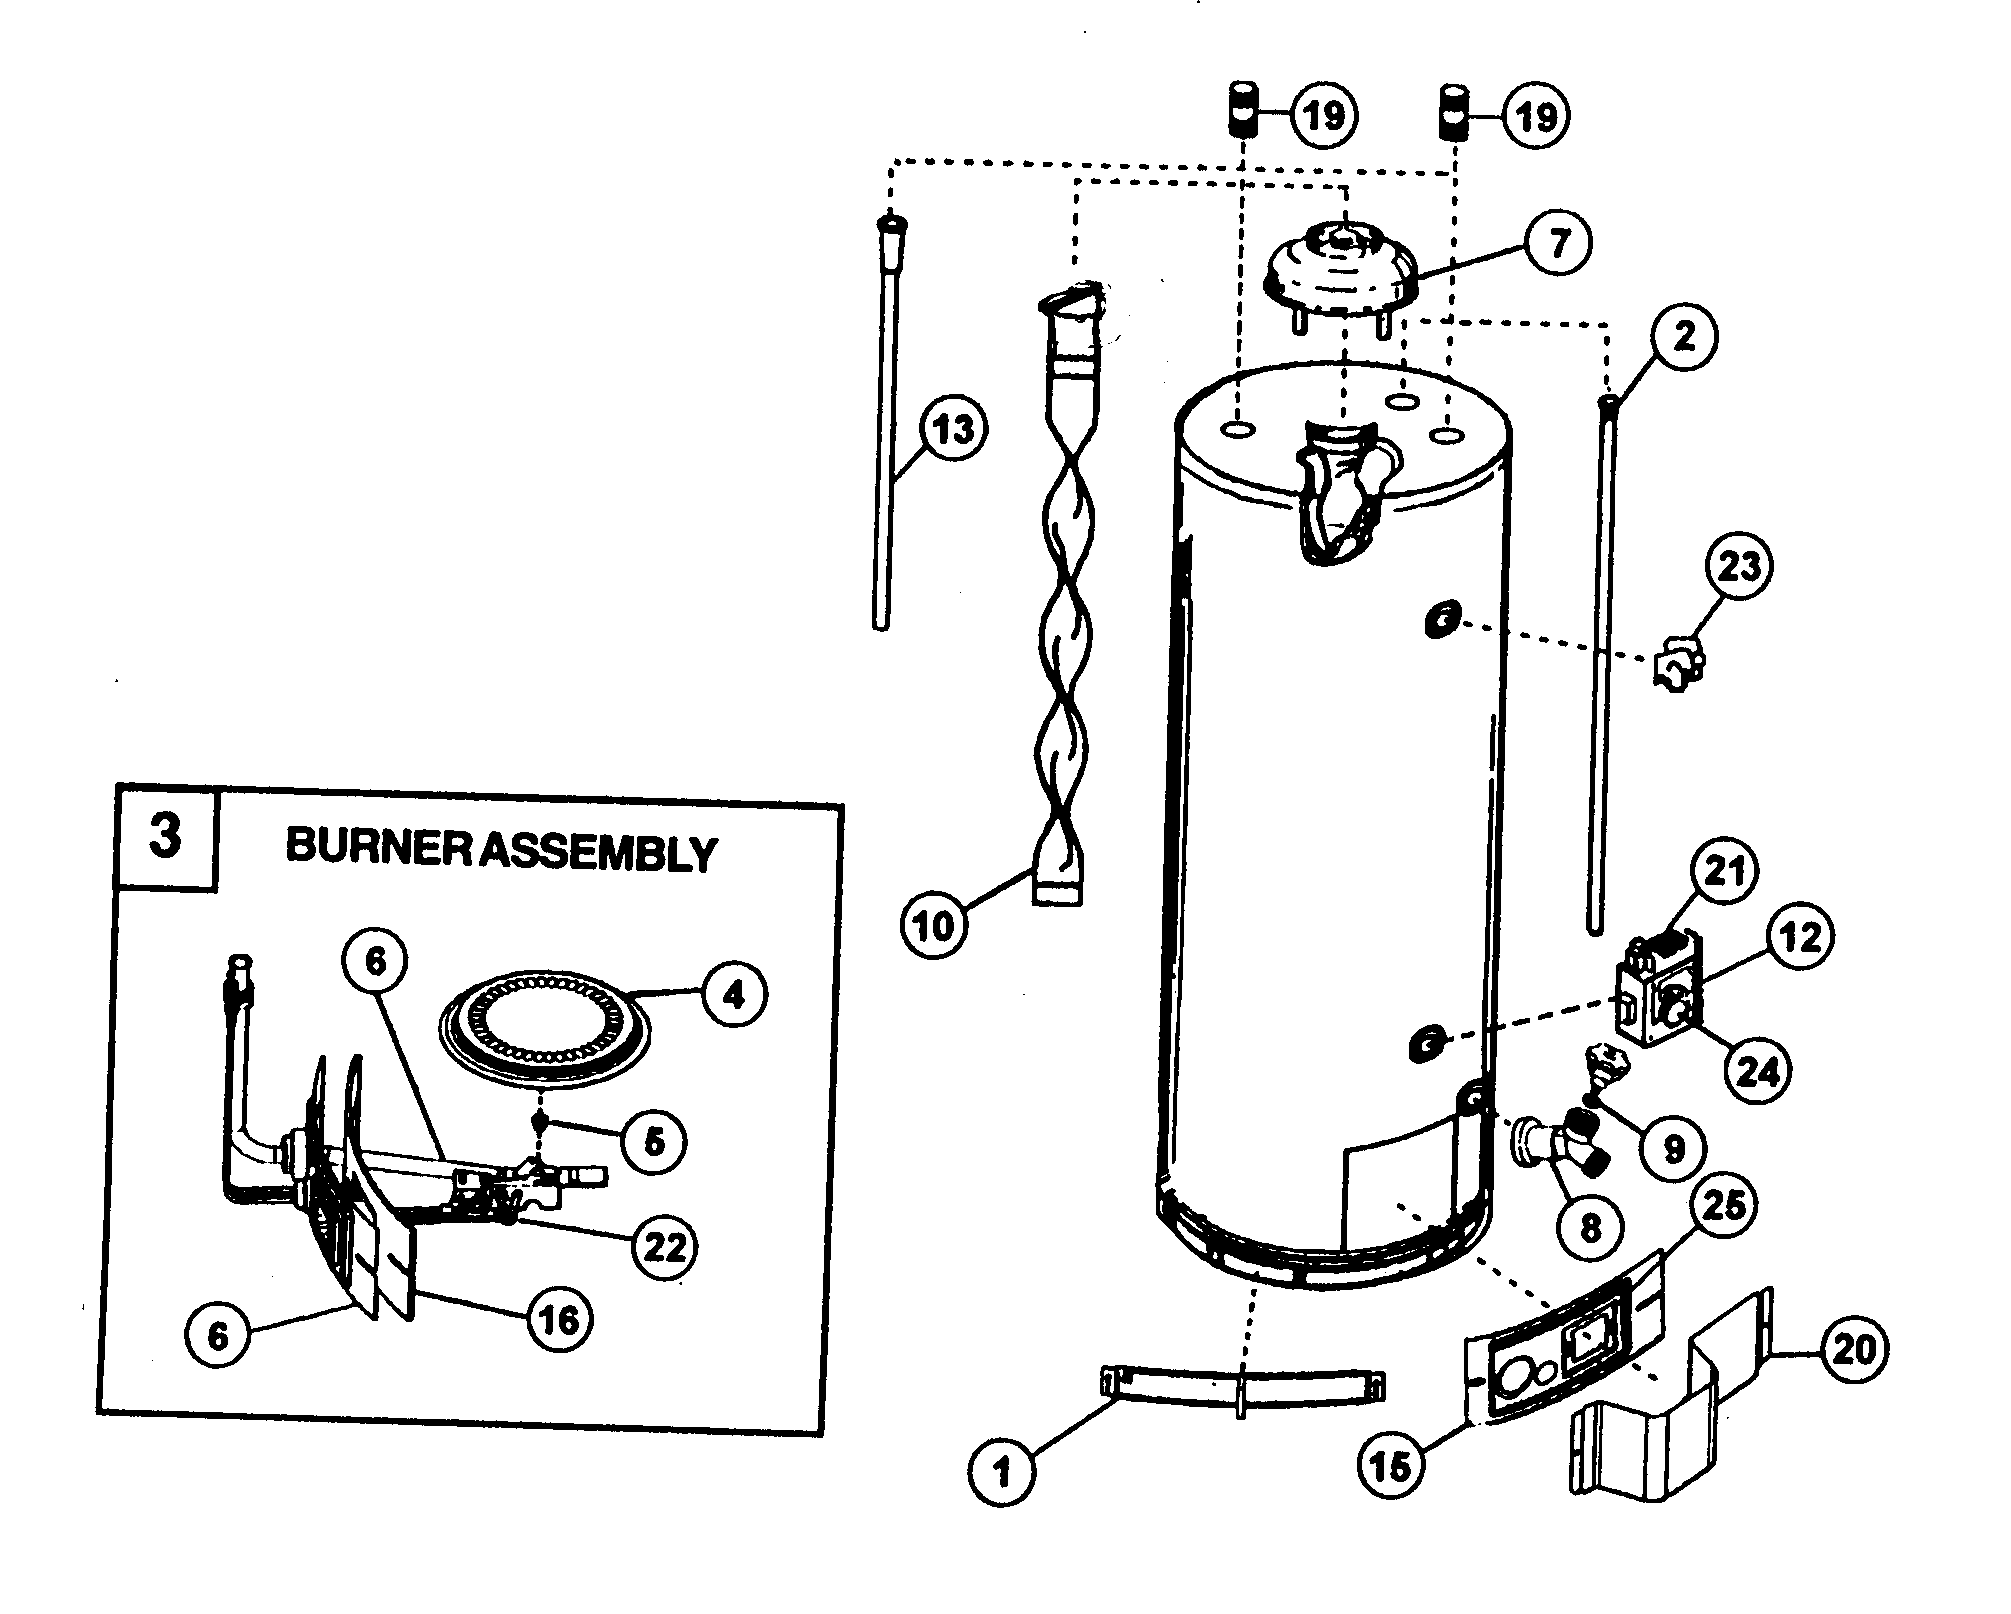 WATER HEATER Diagram & Parts List for Model 153333546